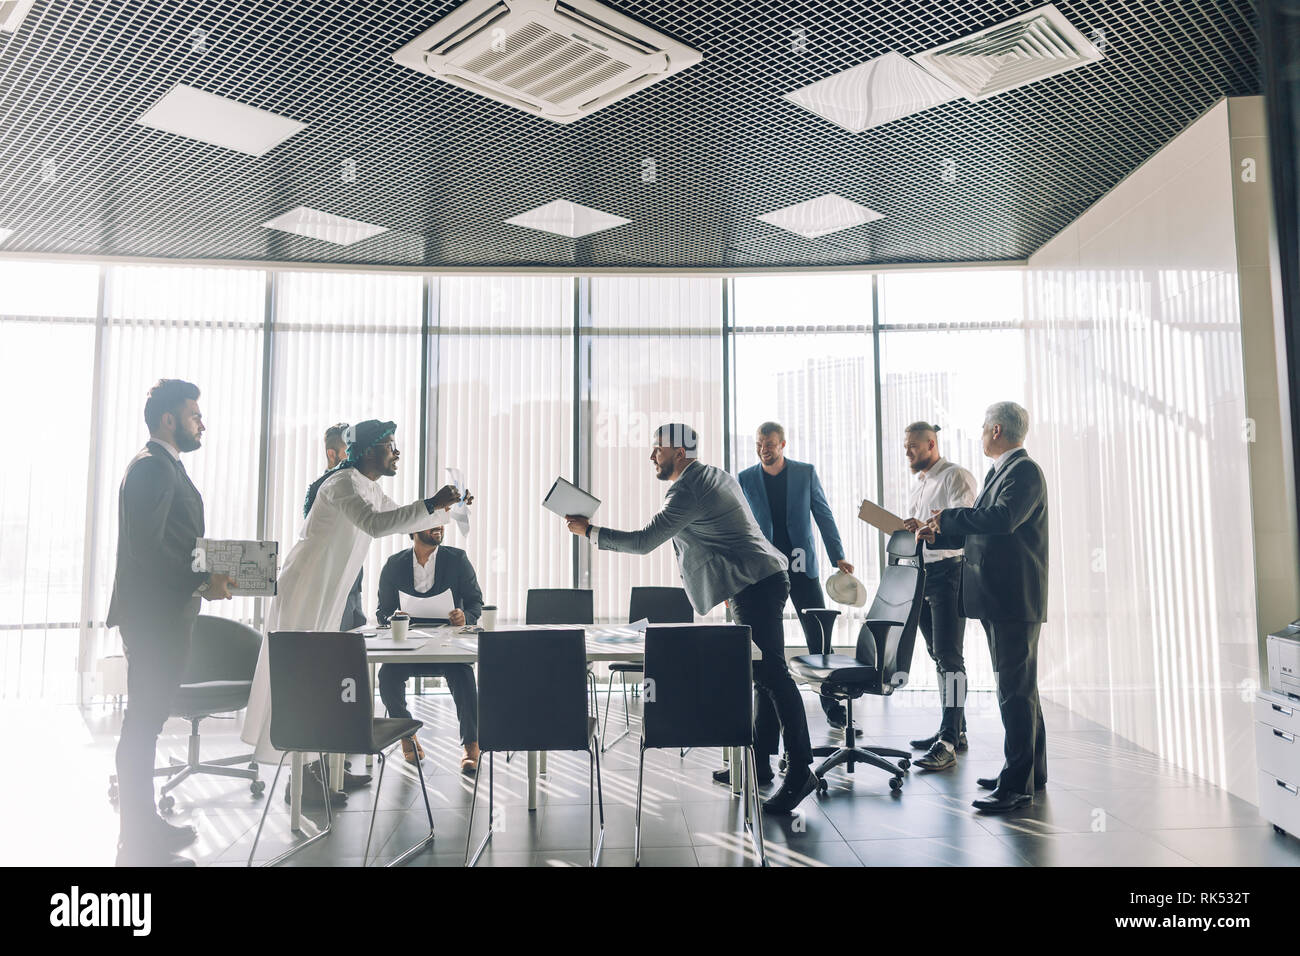 Multiethnic business men dressed in formal wear and national arabian clothes debating vivaciously in conference room. Conflicts can be resolved with a - Stock Image